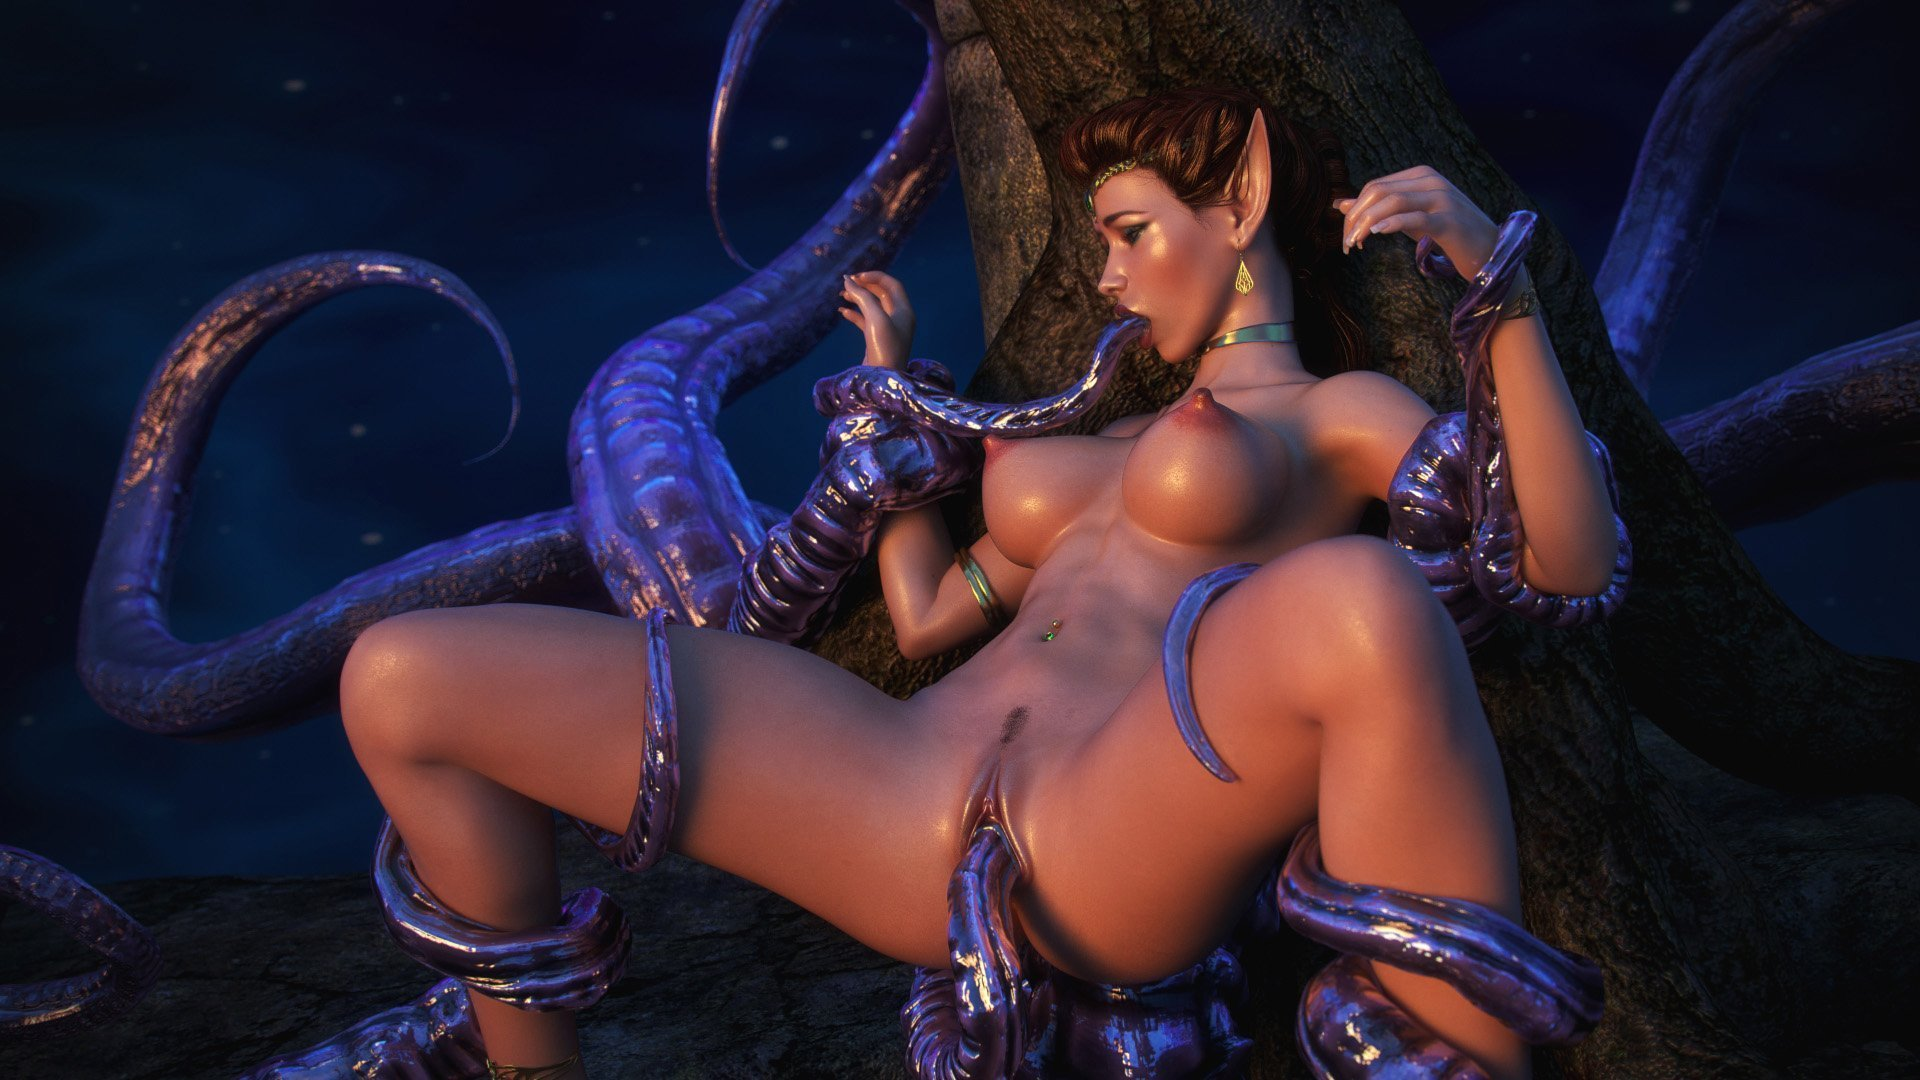 3d elf sex games download hentai videos